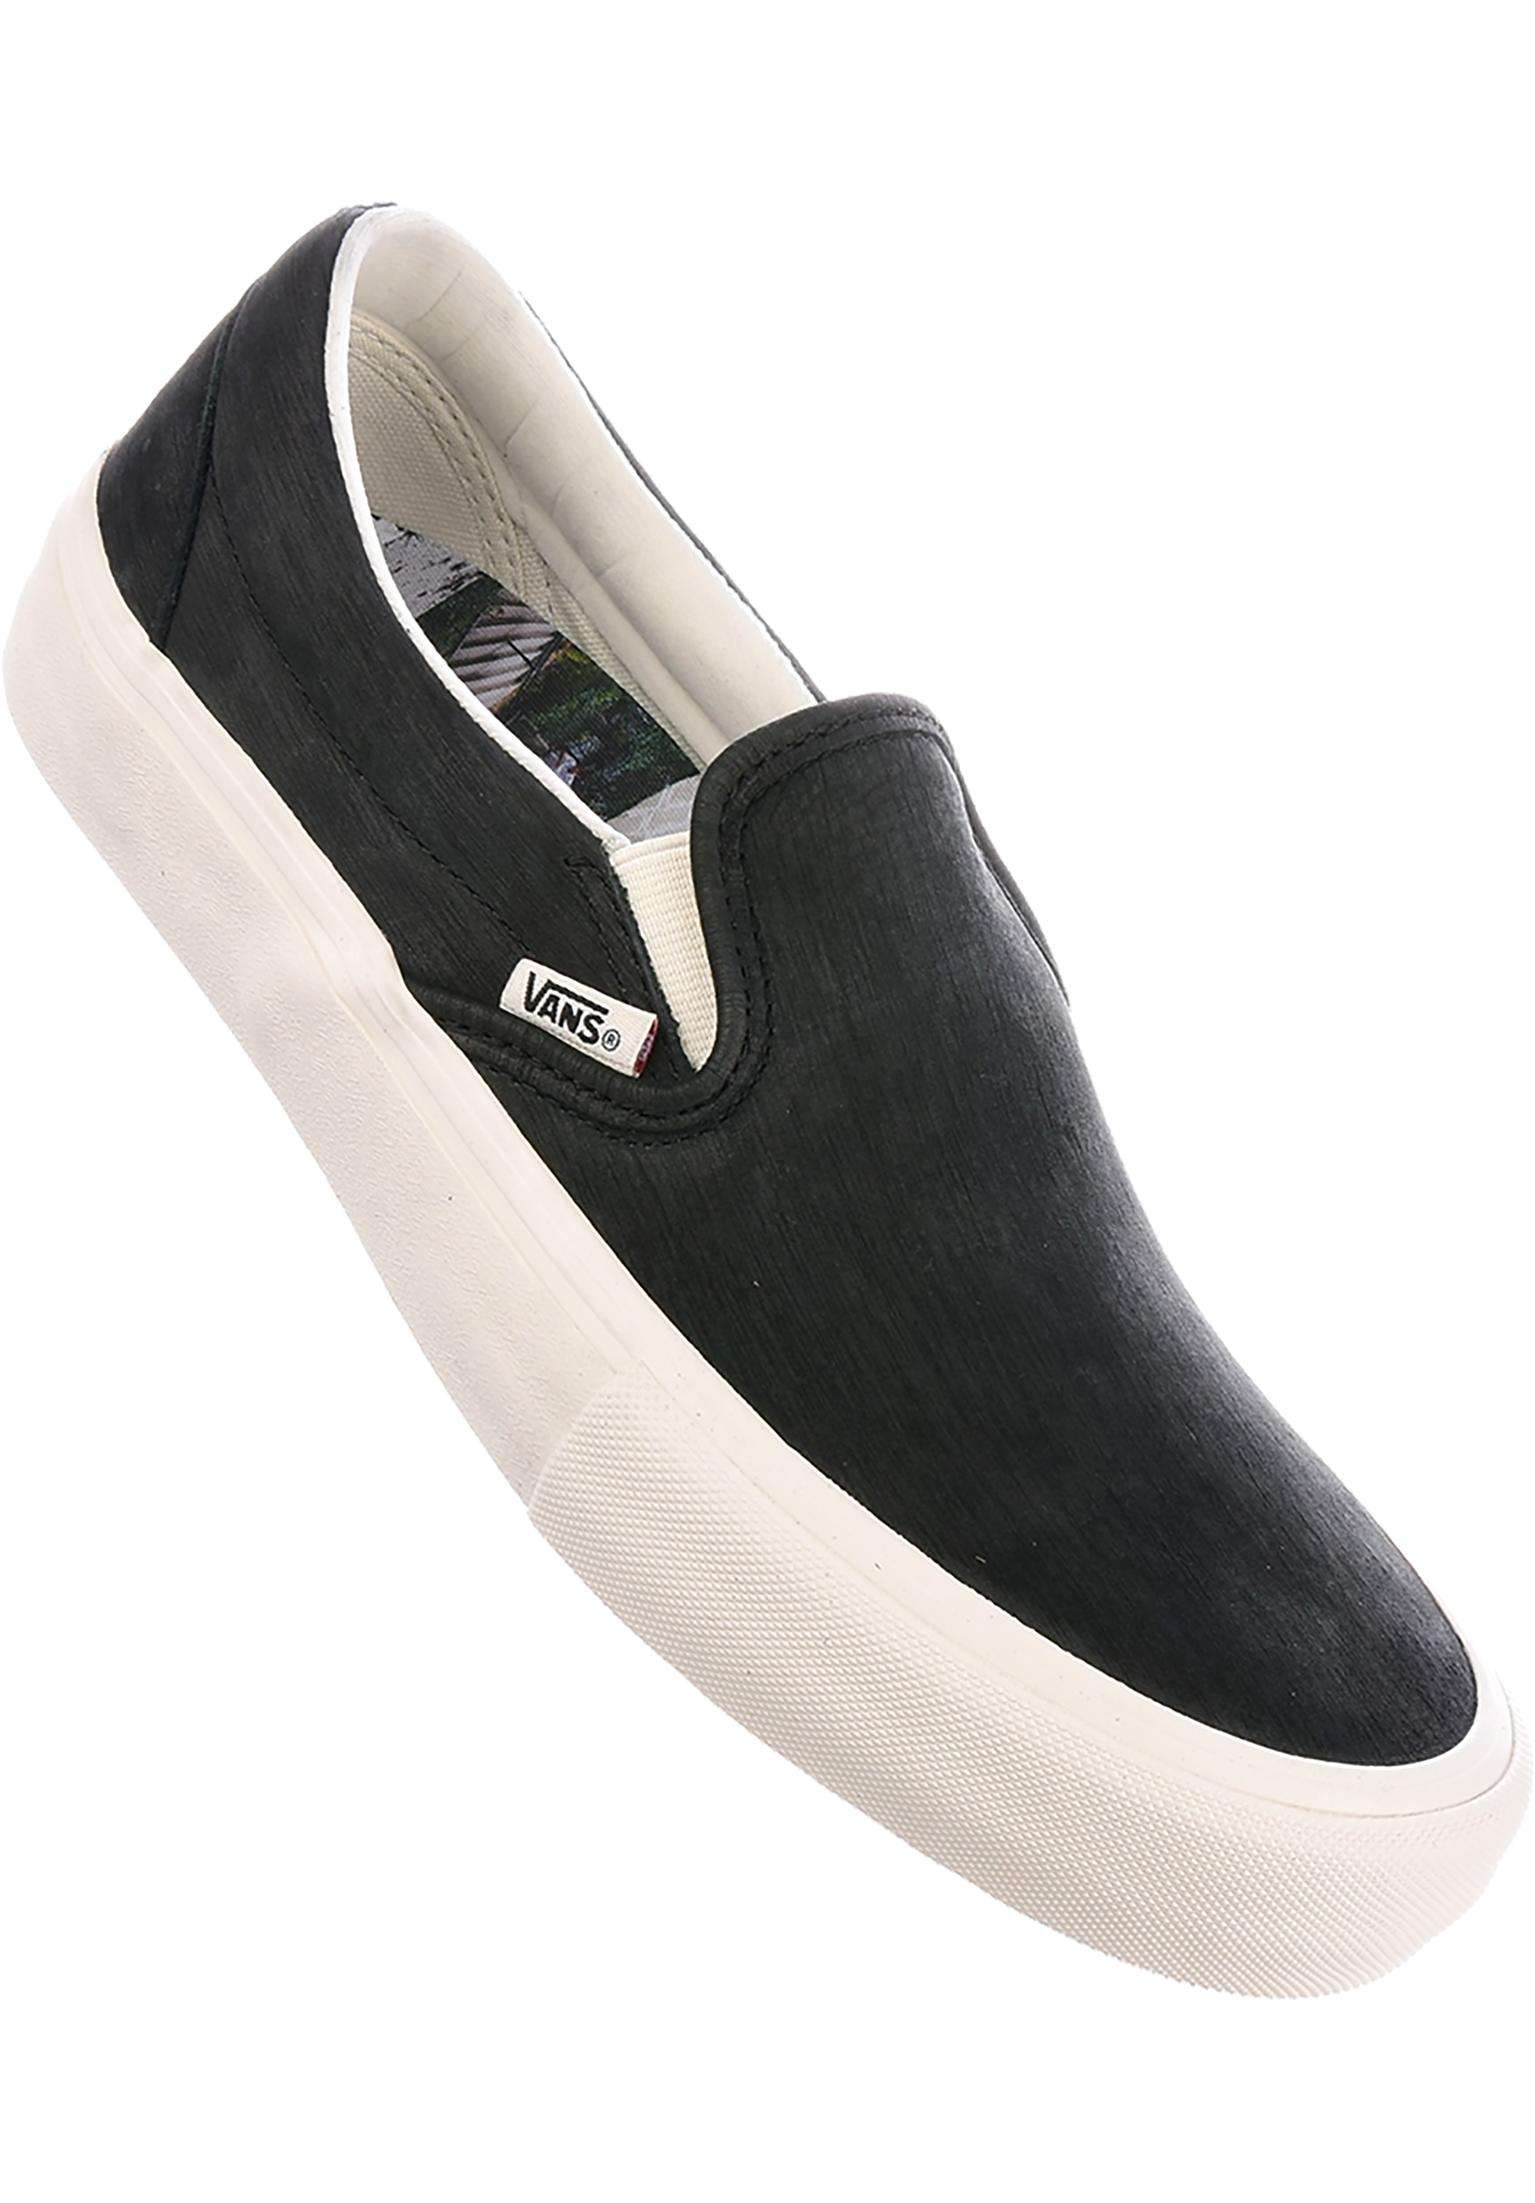 edc3da38af Slip-On Pro Vans All Shoes in pfanner-black for Men